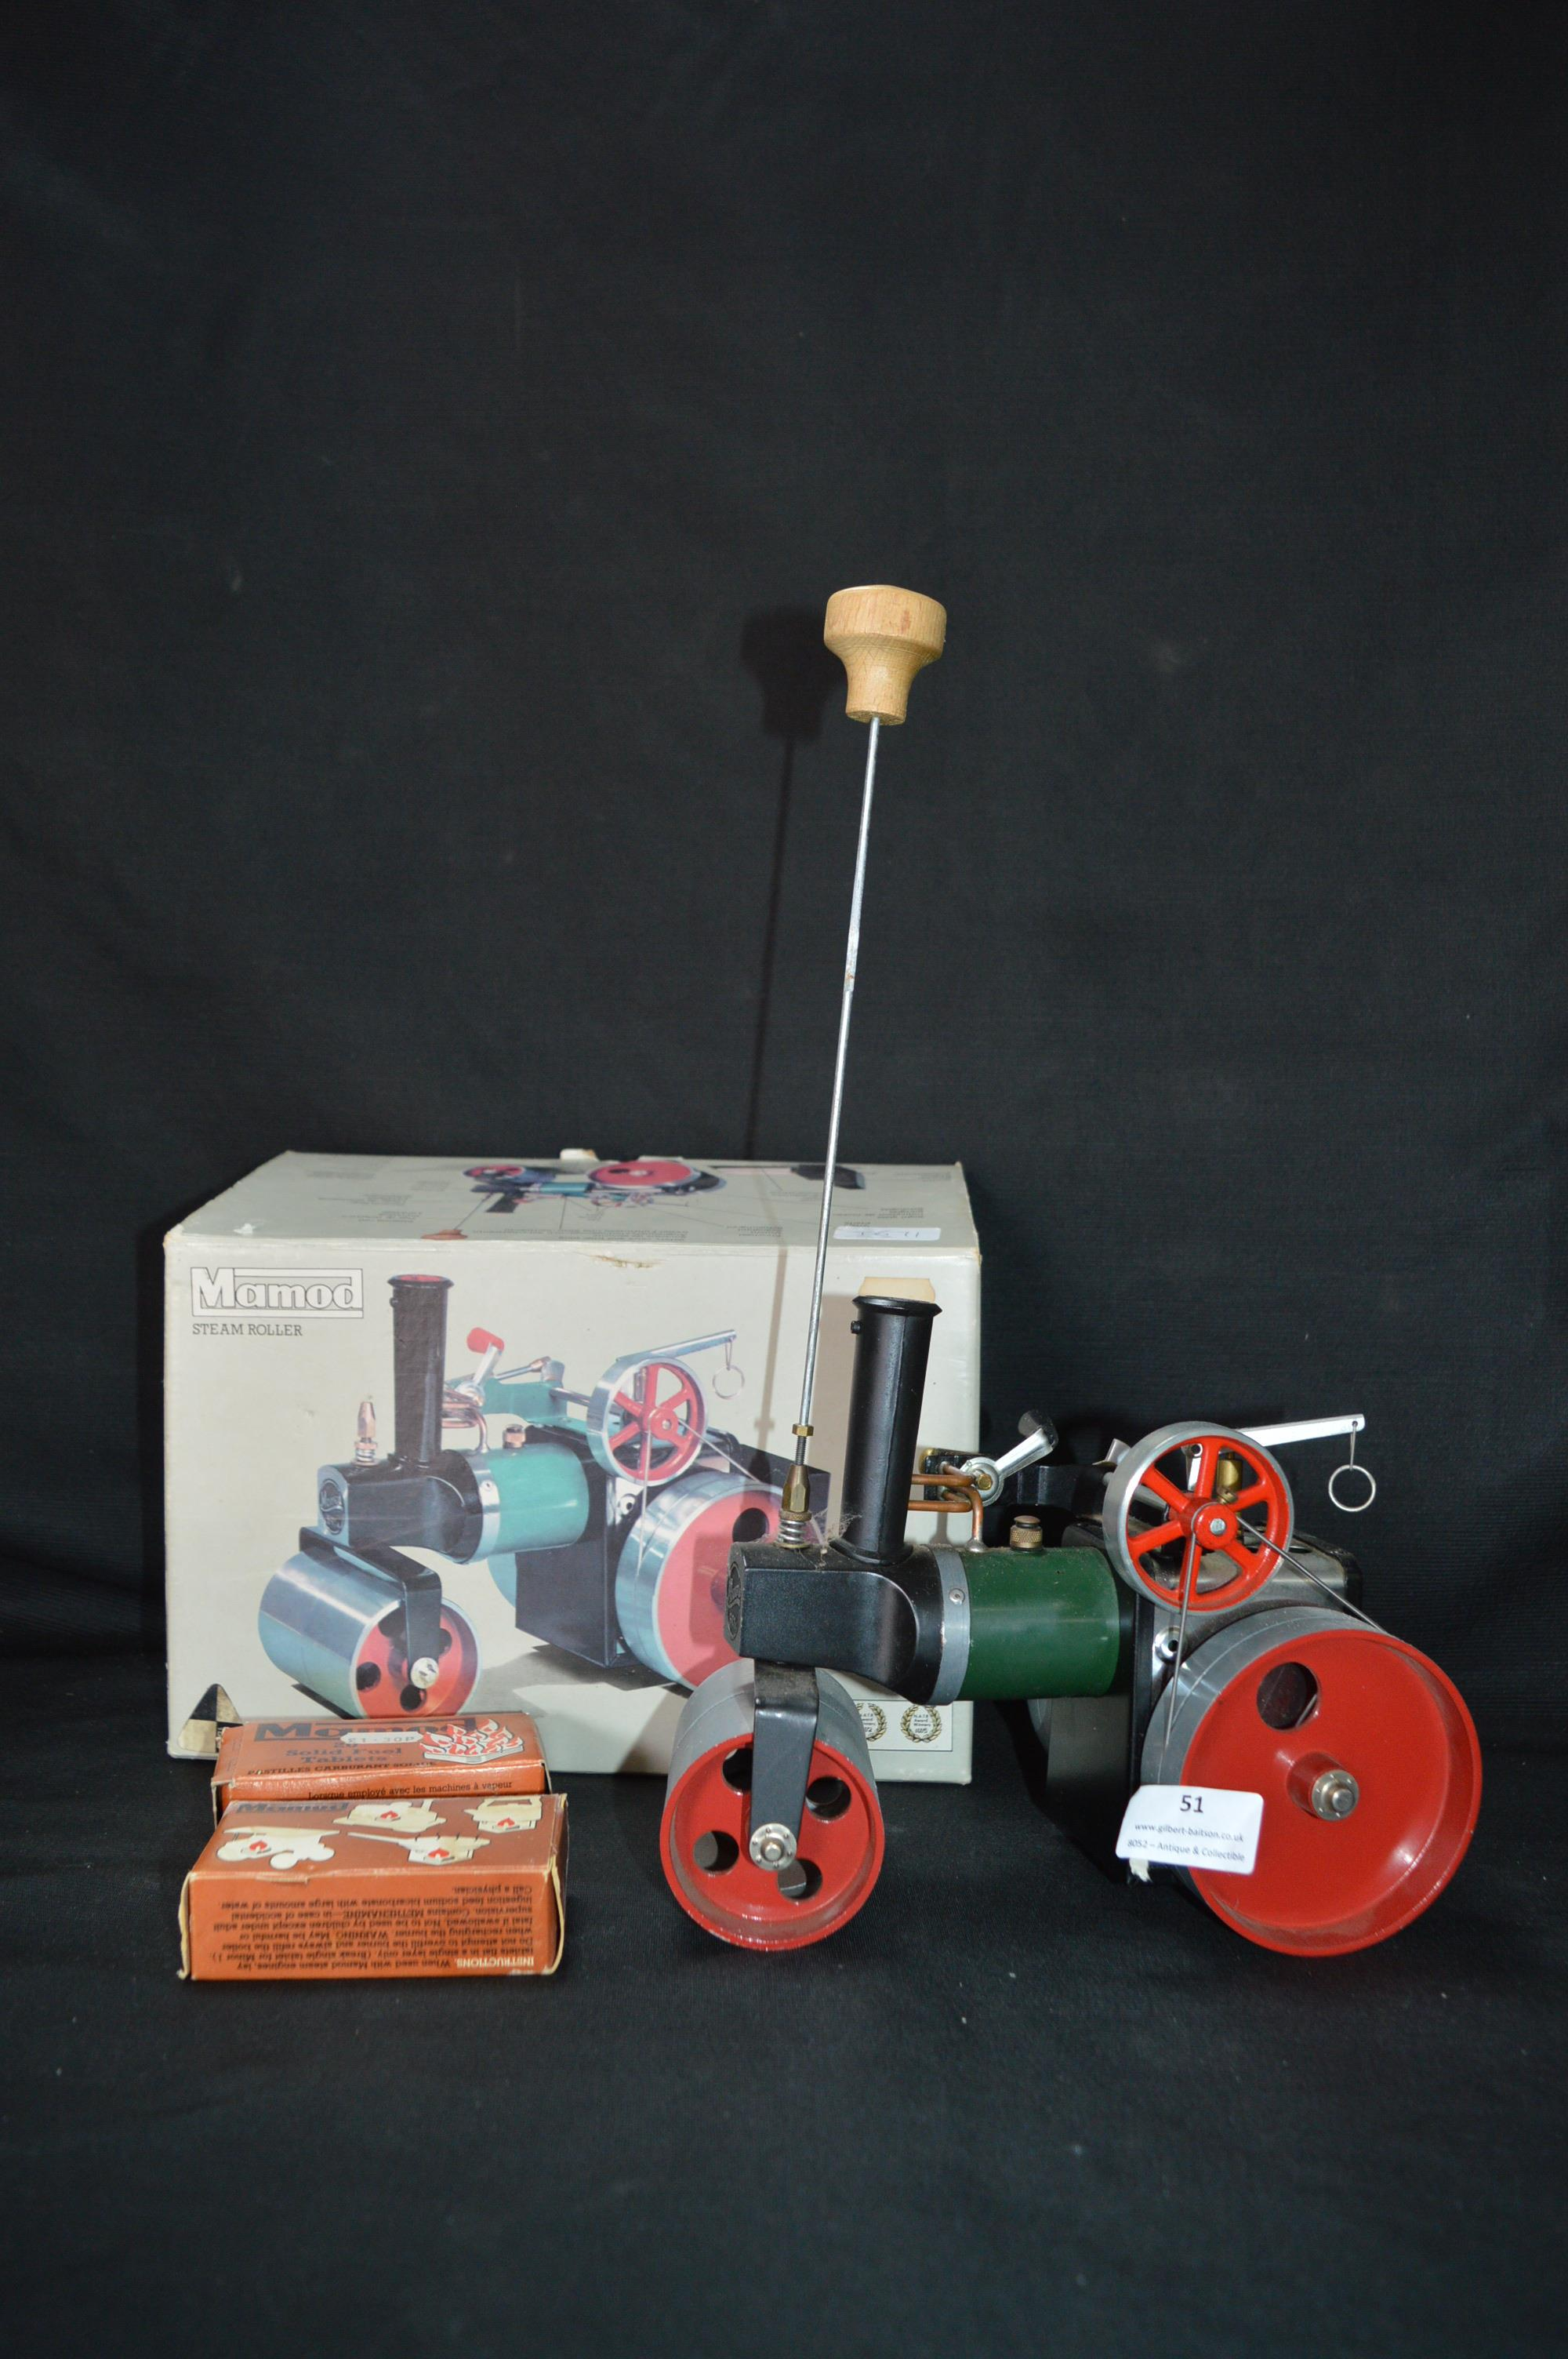 Lot 51 - Mamod Steam Roller (Boxed)